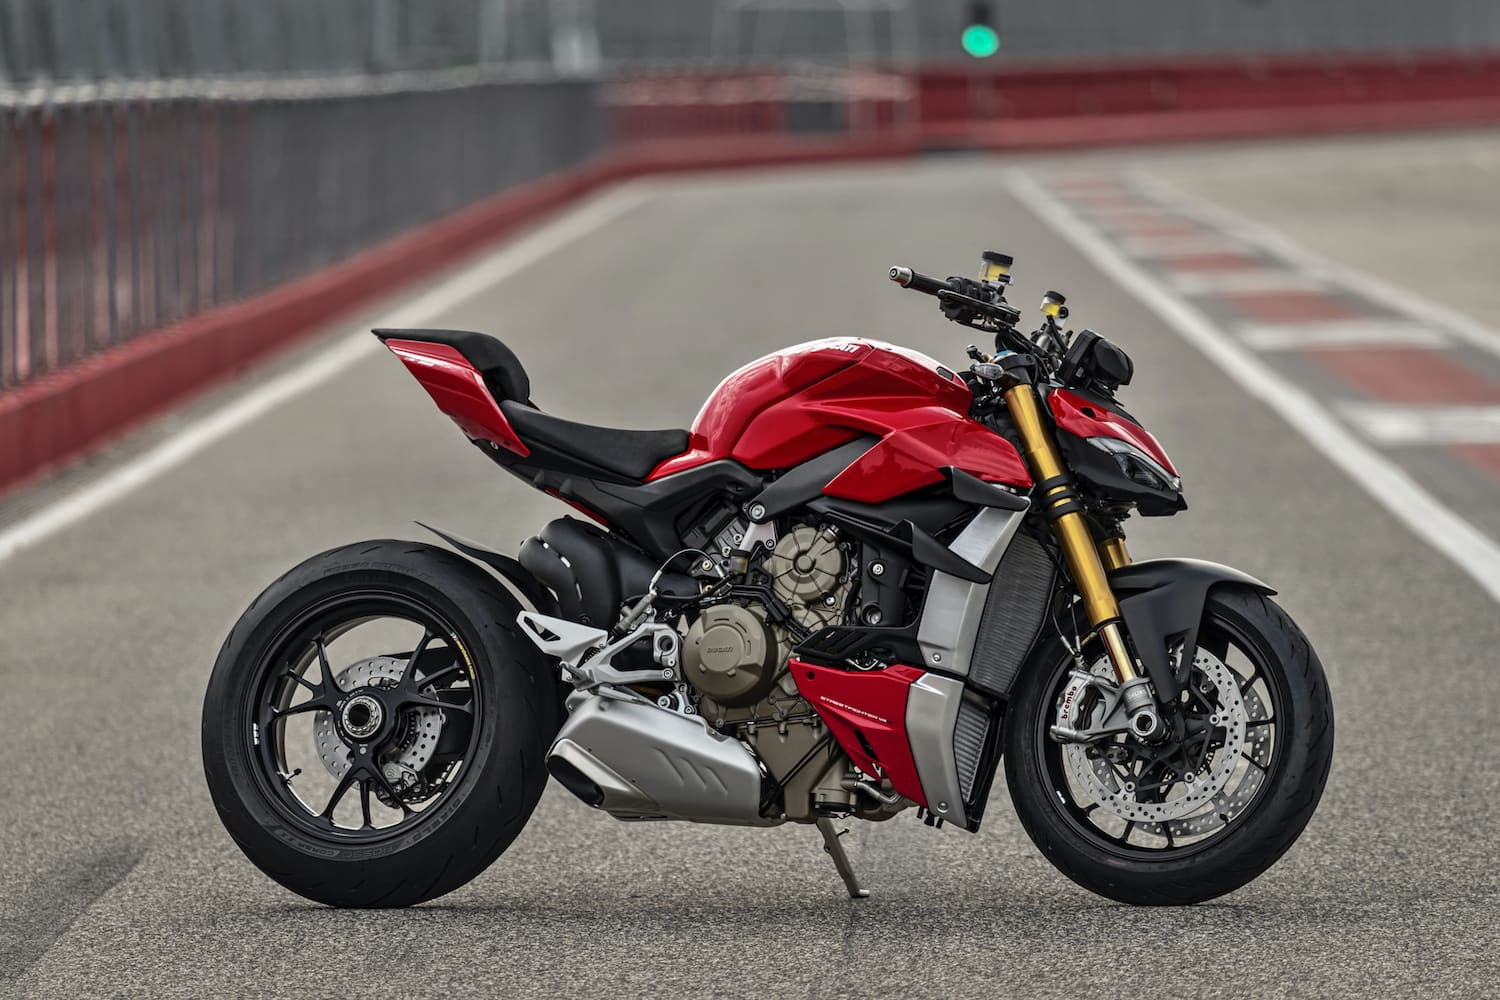 Ducati Streetfighter V4, contender for most attractive motorcycle of 2020